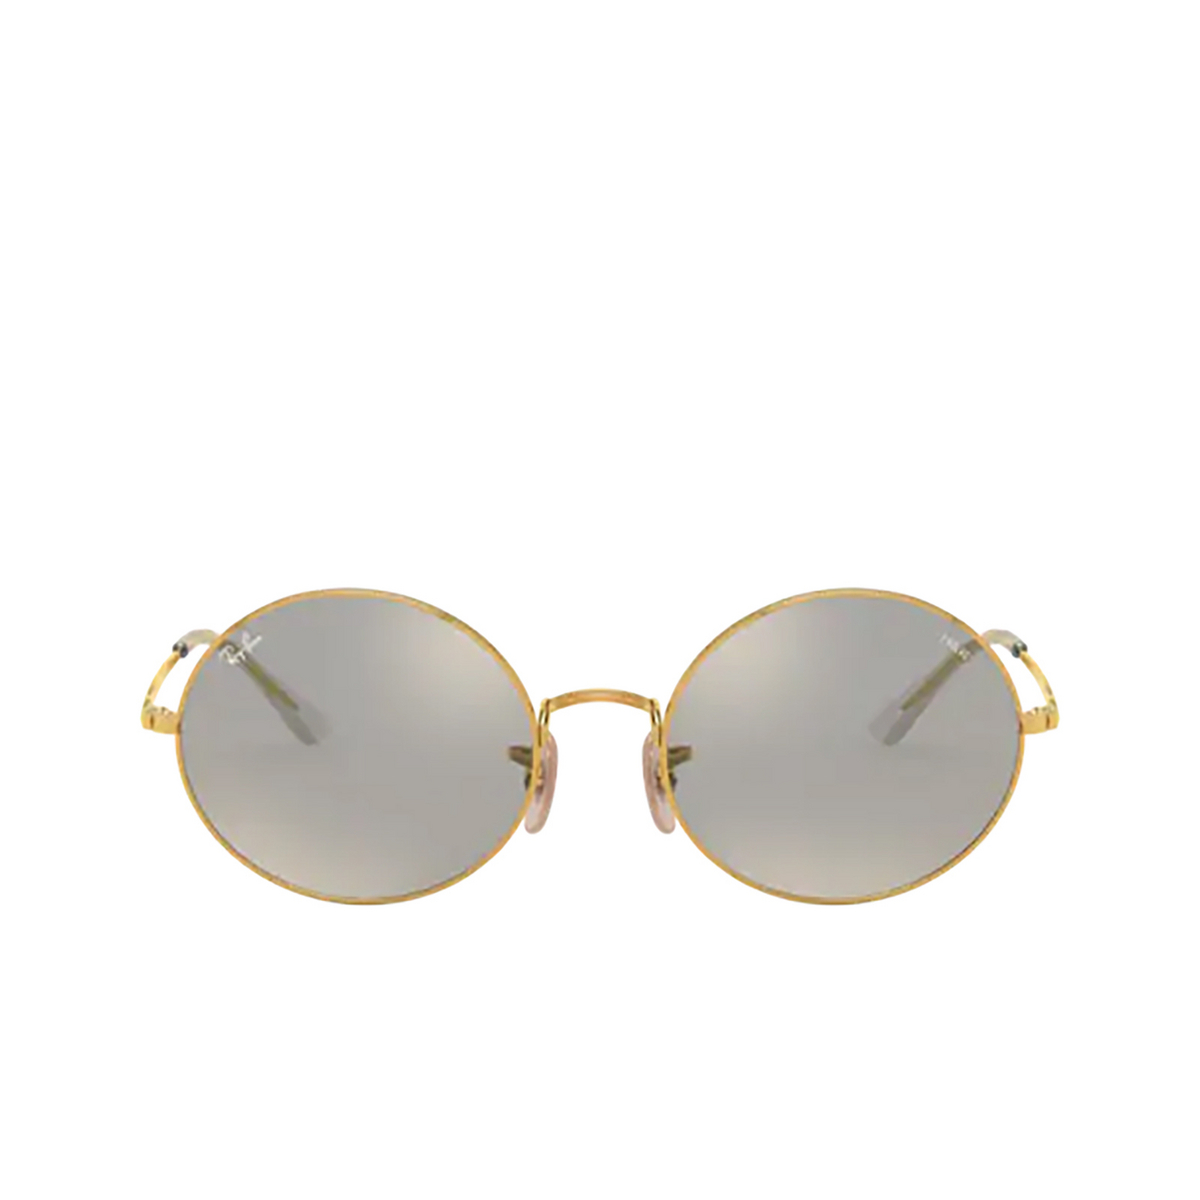 Ray-Ban® Oval Sunglasses: Oval RB1970 color Arista 001/B3 - front view.